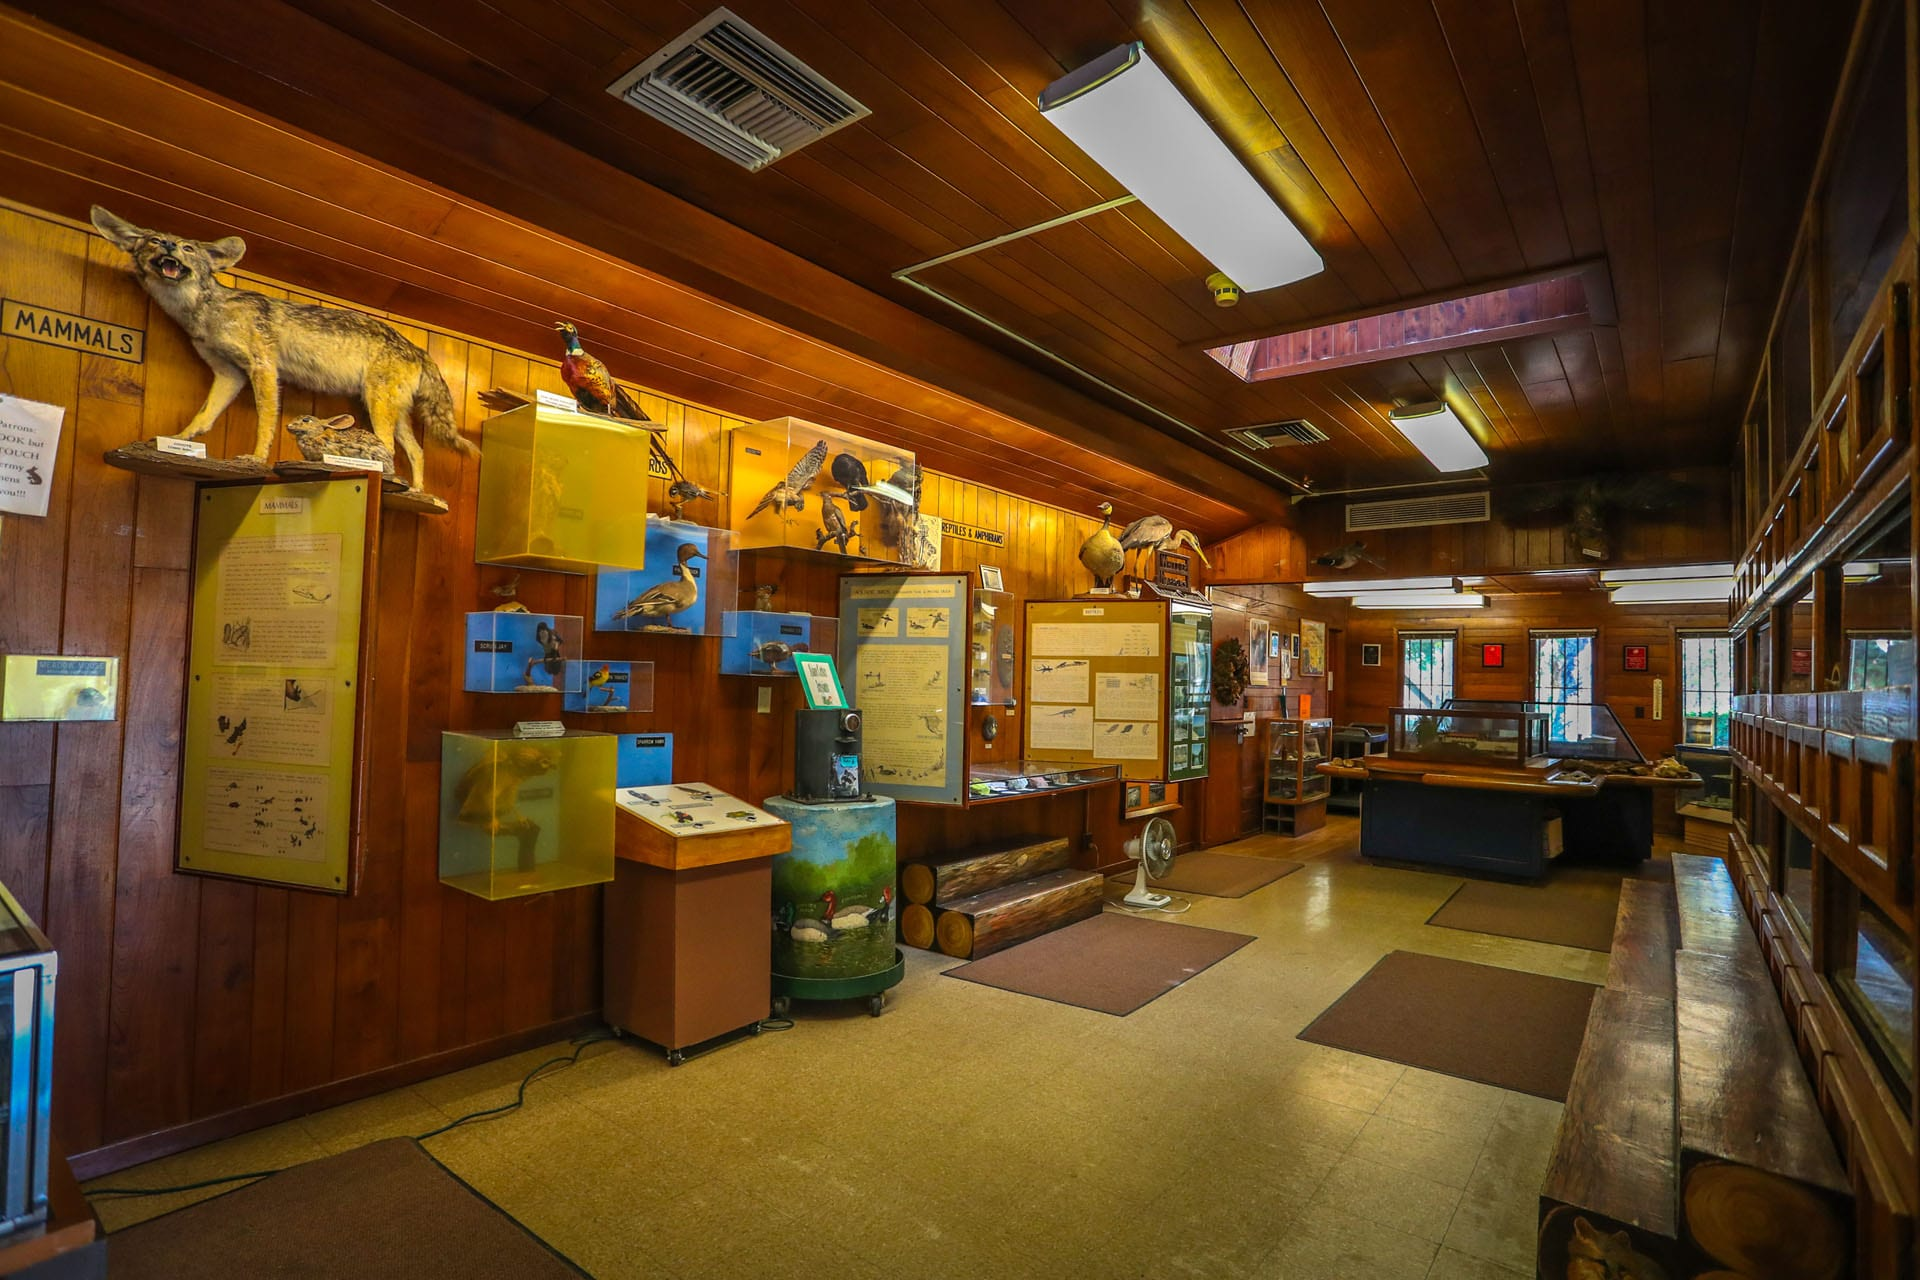 Exhibits of animals of Whittier Narrows inside the museum